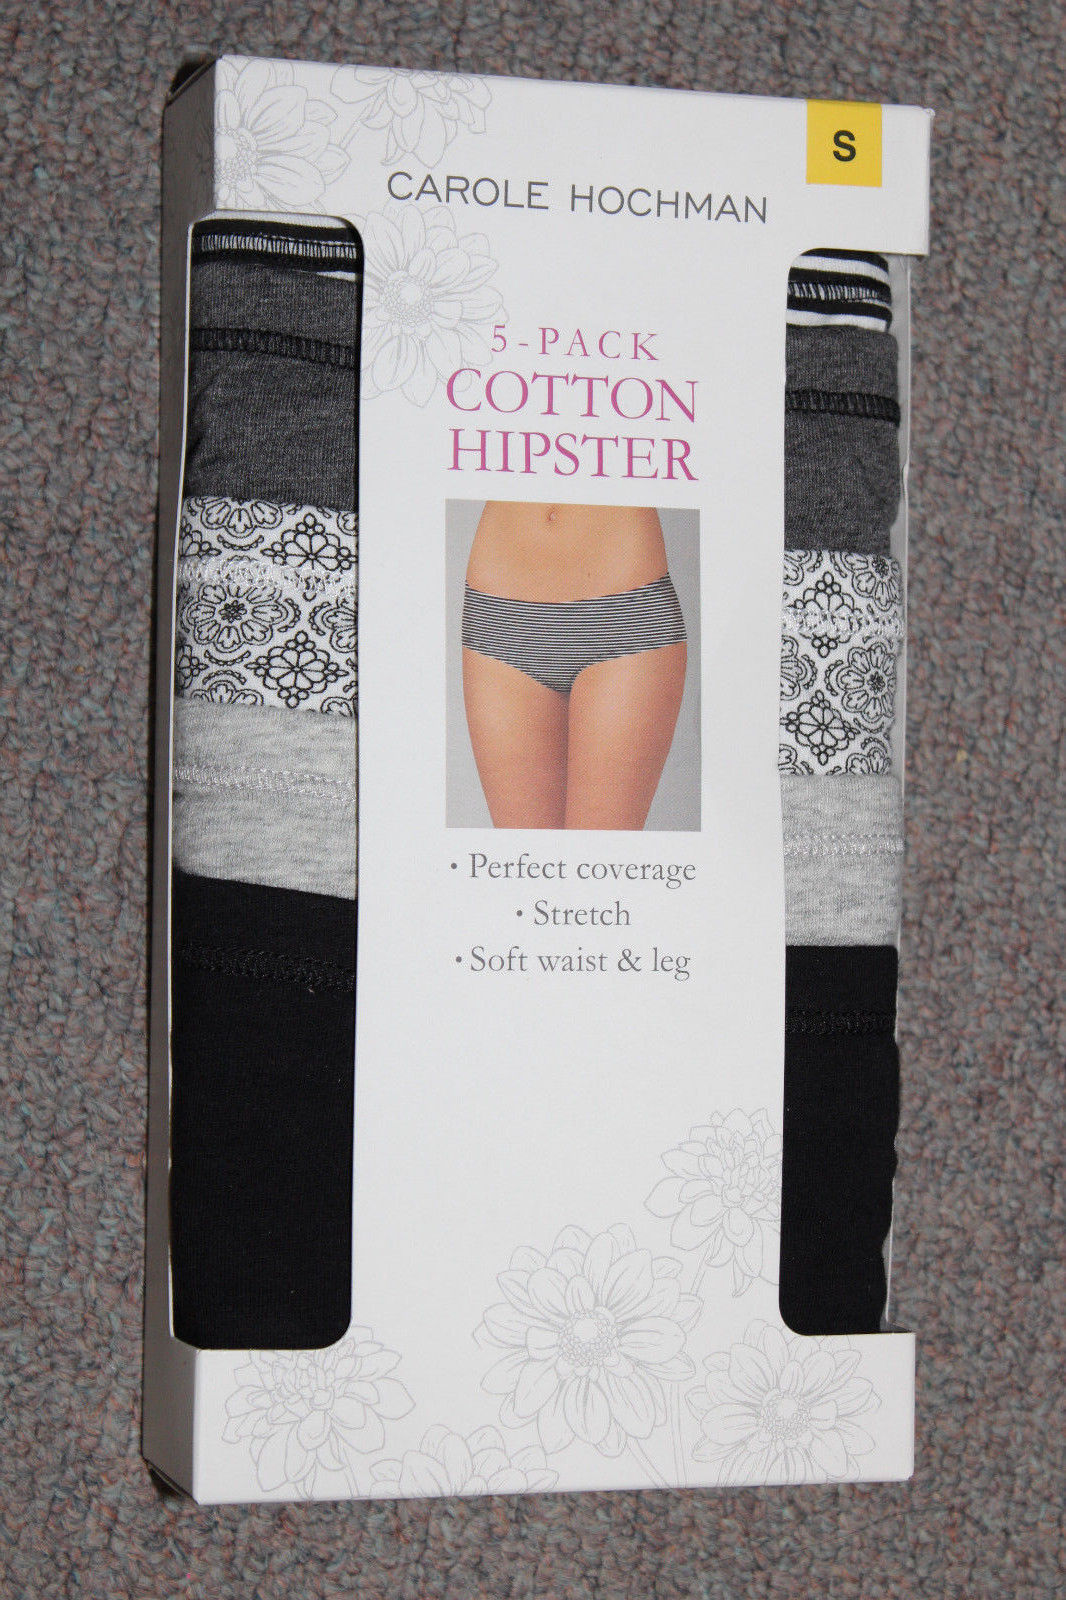 84a99938cc90 NEW Carole Hochman 5-pack Cotton Hipster and 50 similar items